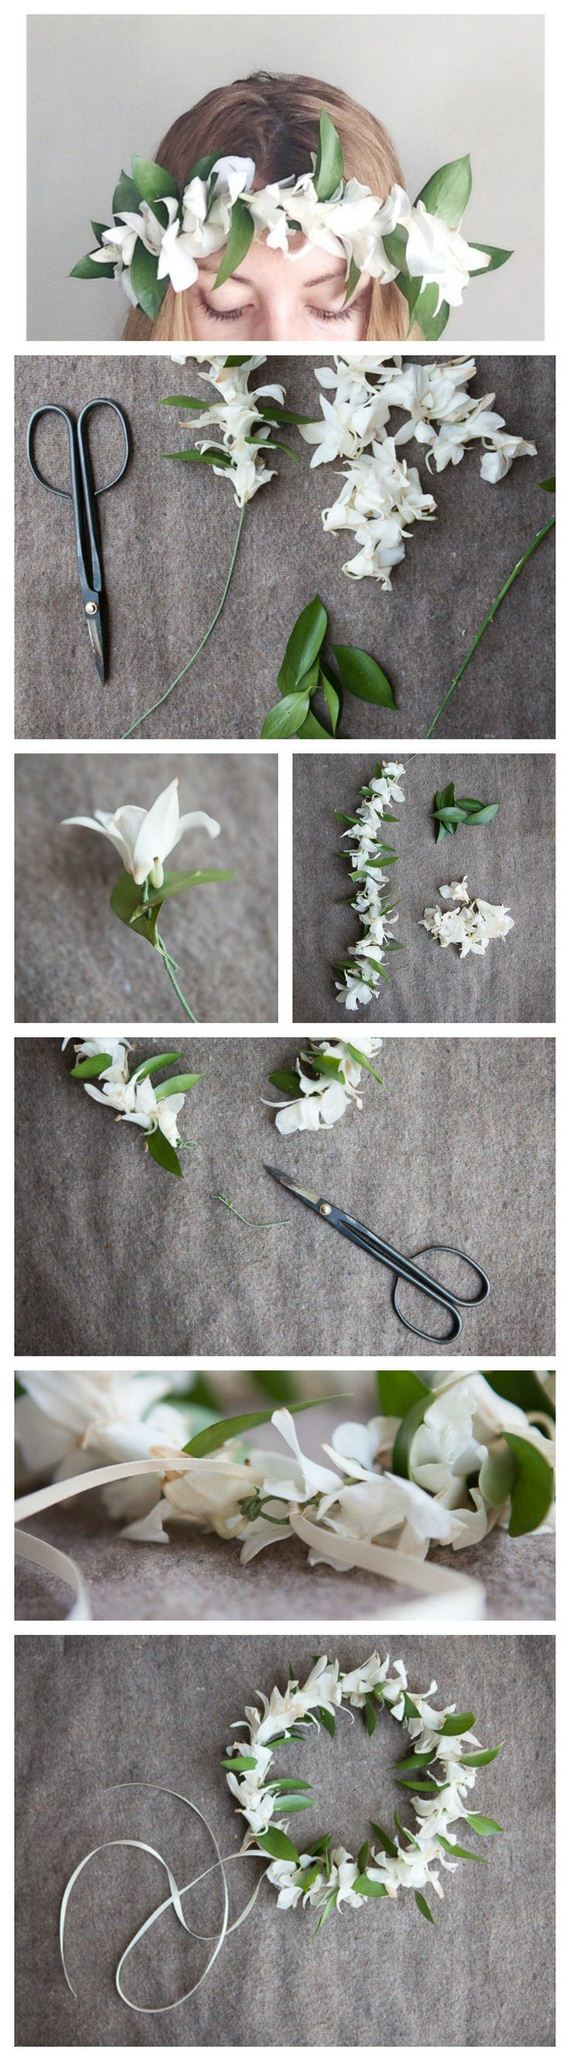 05-how-to-make-a-flower-crown-hairband-diy